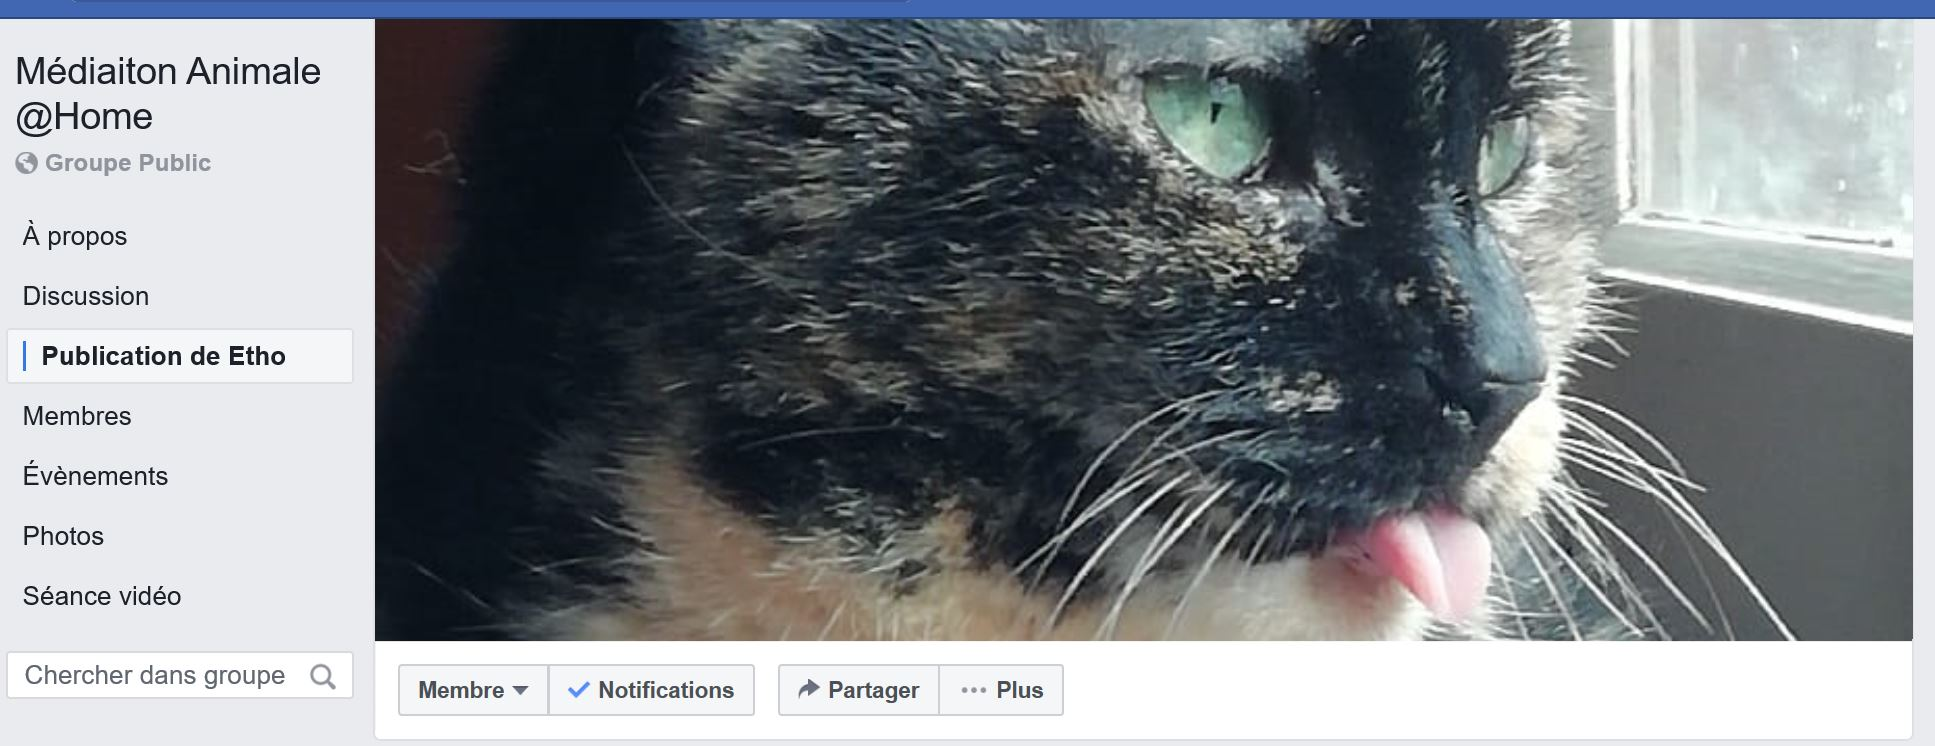 groupe Facebook Mediaiton Animale Home